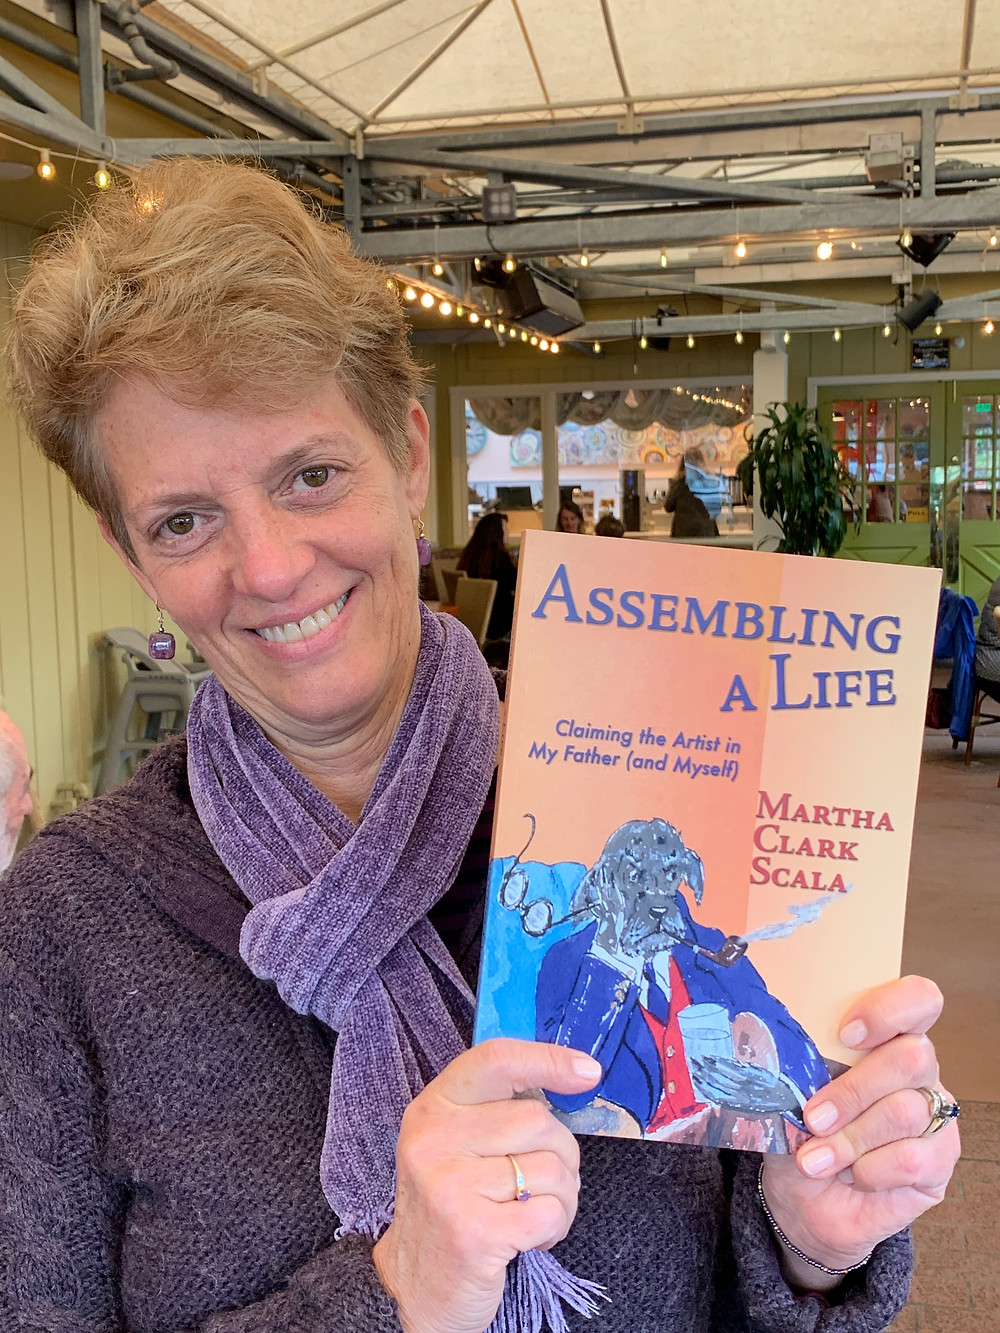 Author Martha Clark Scala with her new memoir, Assembling a Life